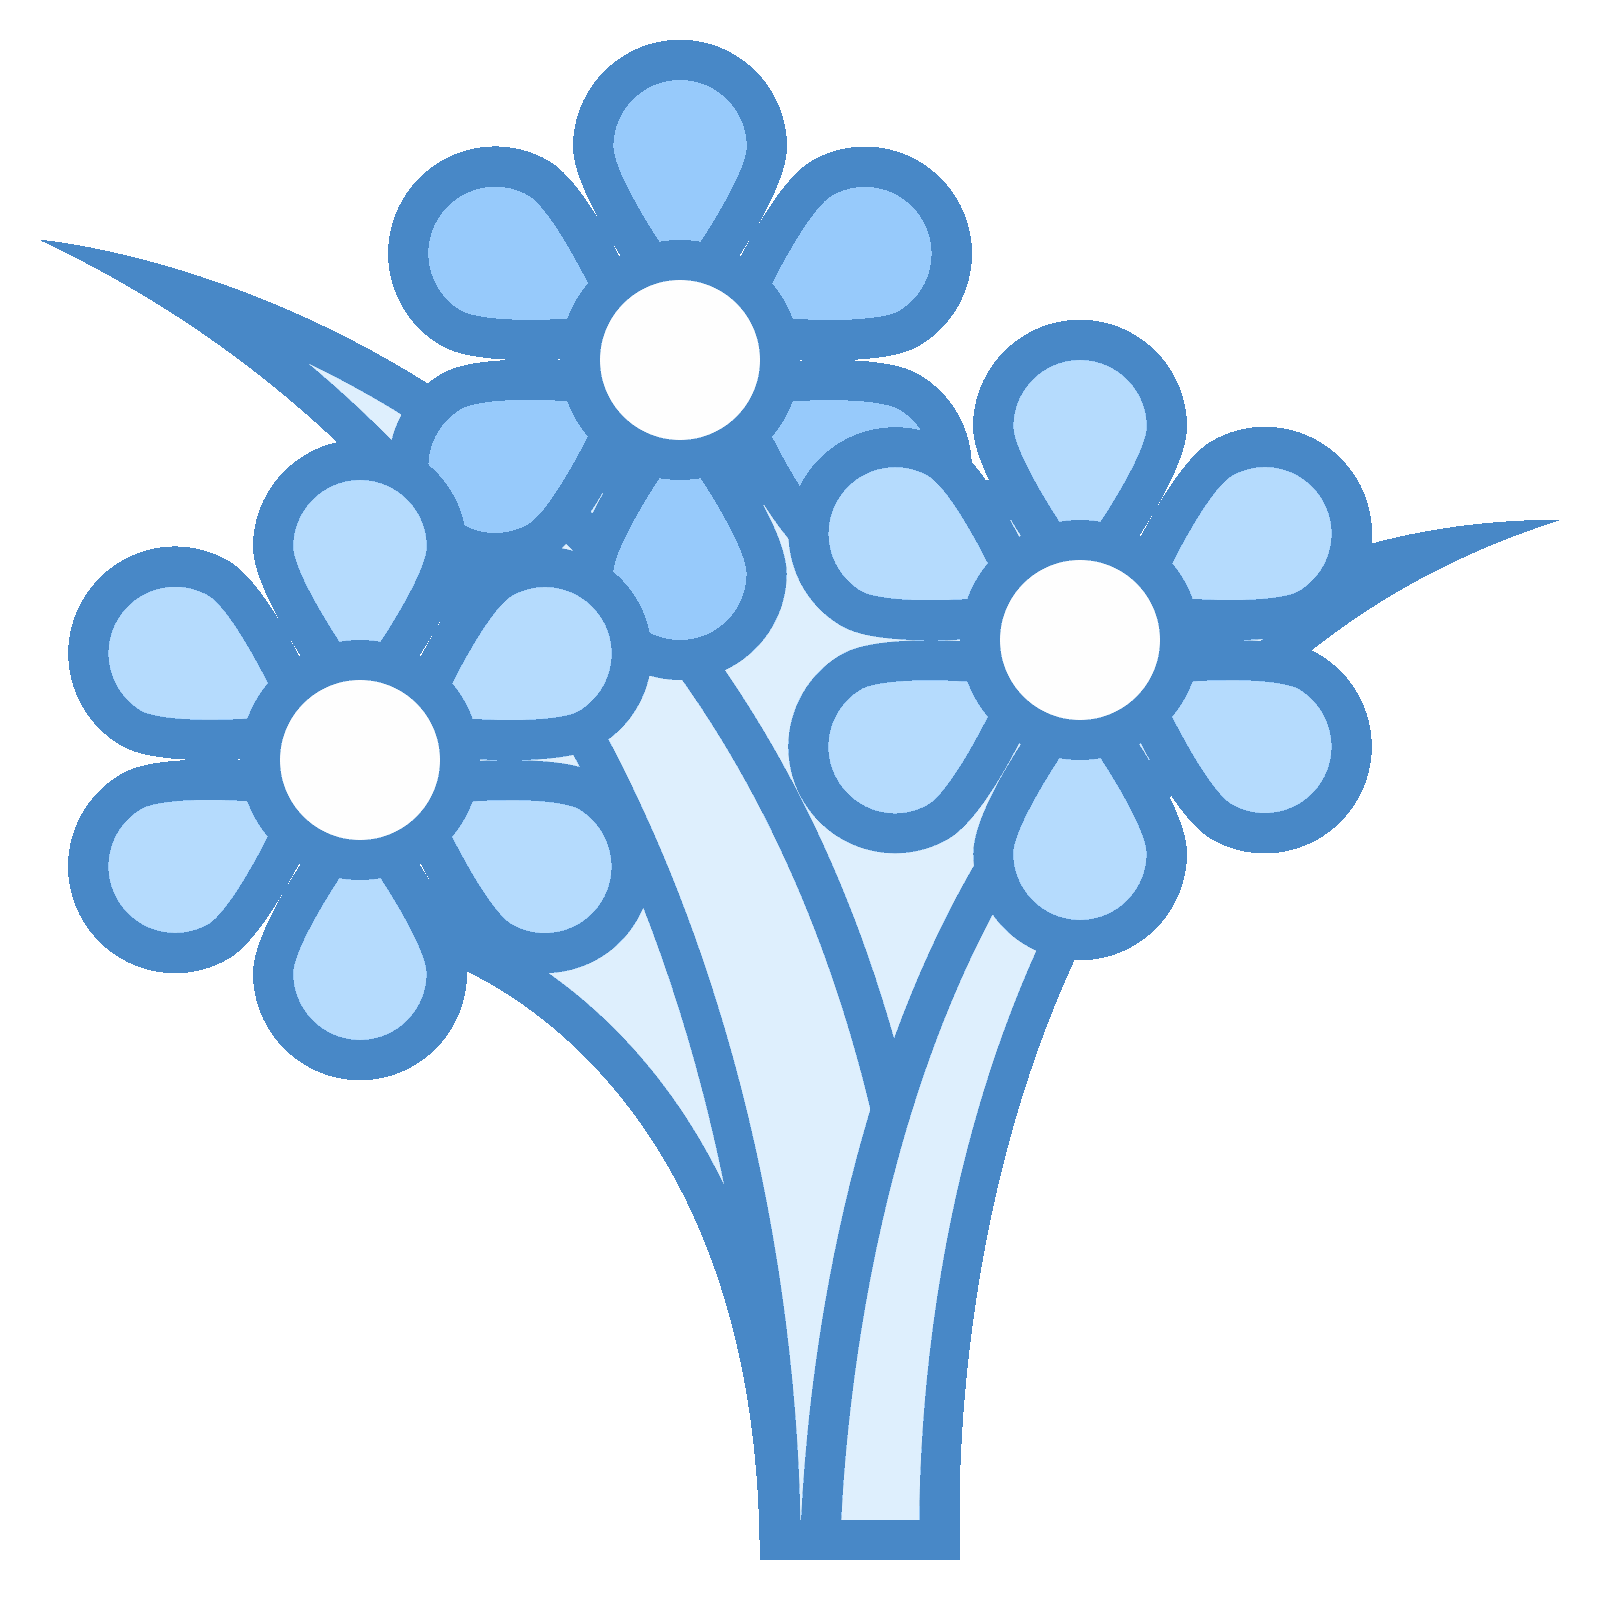 Bouquet vector flat. Flower icon free download